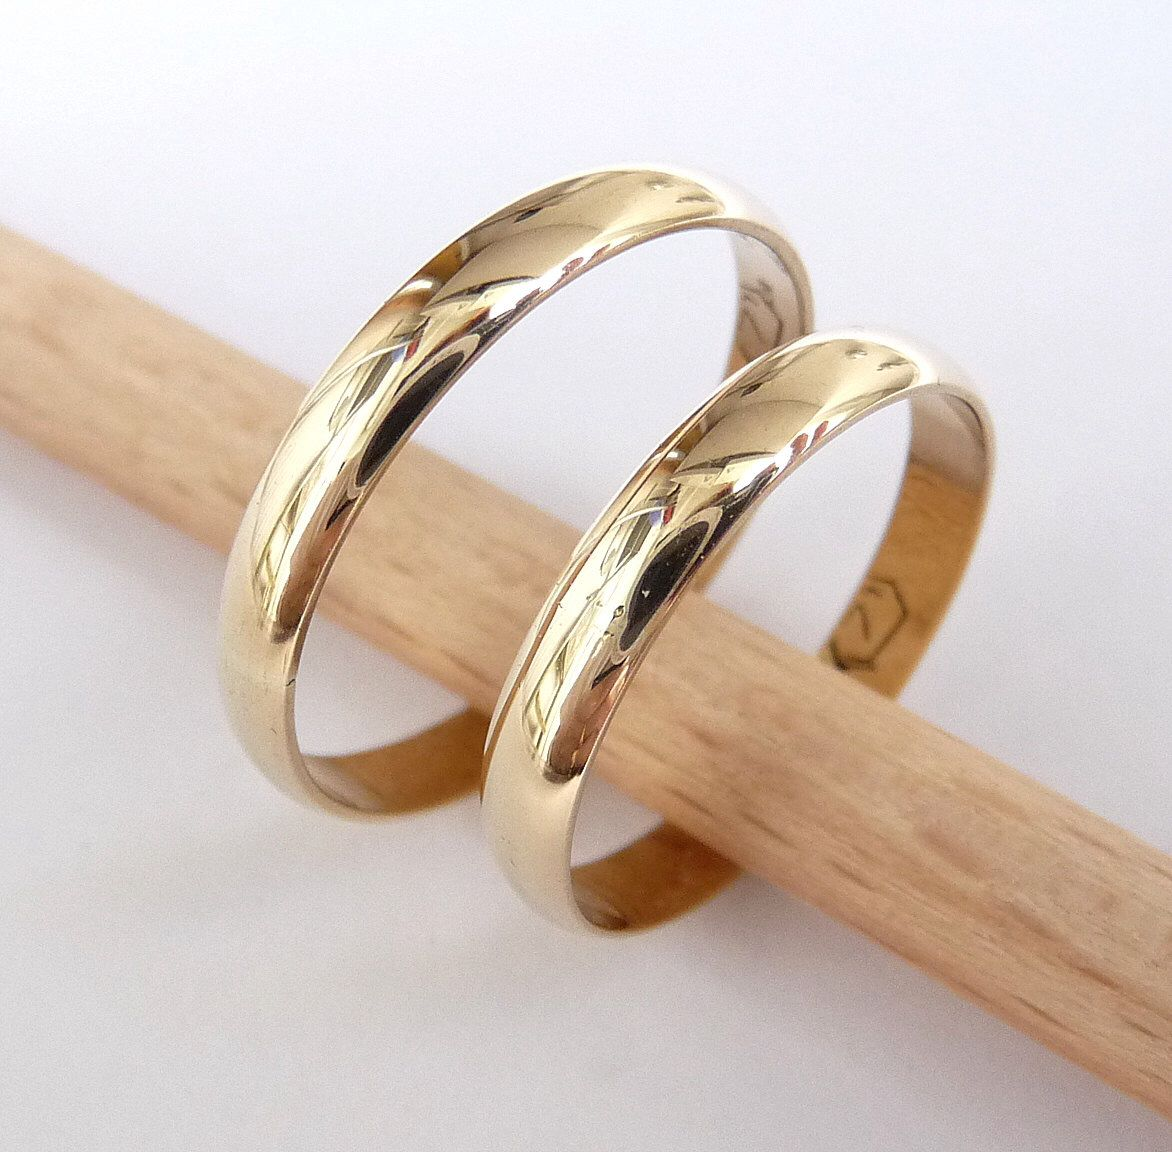 Wedding Ring Set Hers And Hers 14k Gold Rings 3mm Wide By 1mm Thick